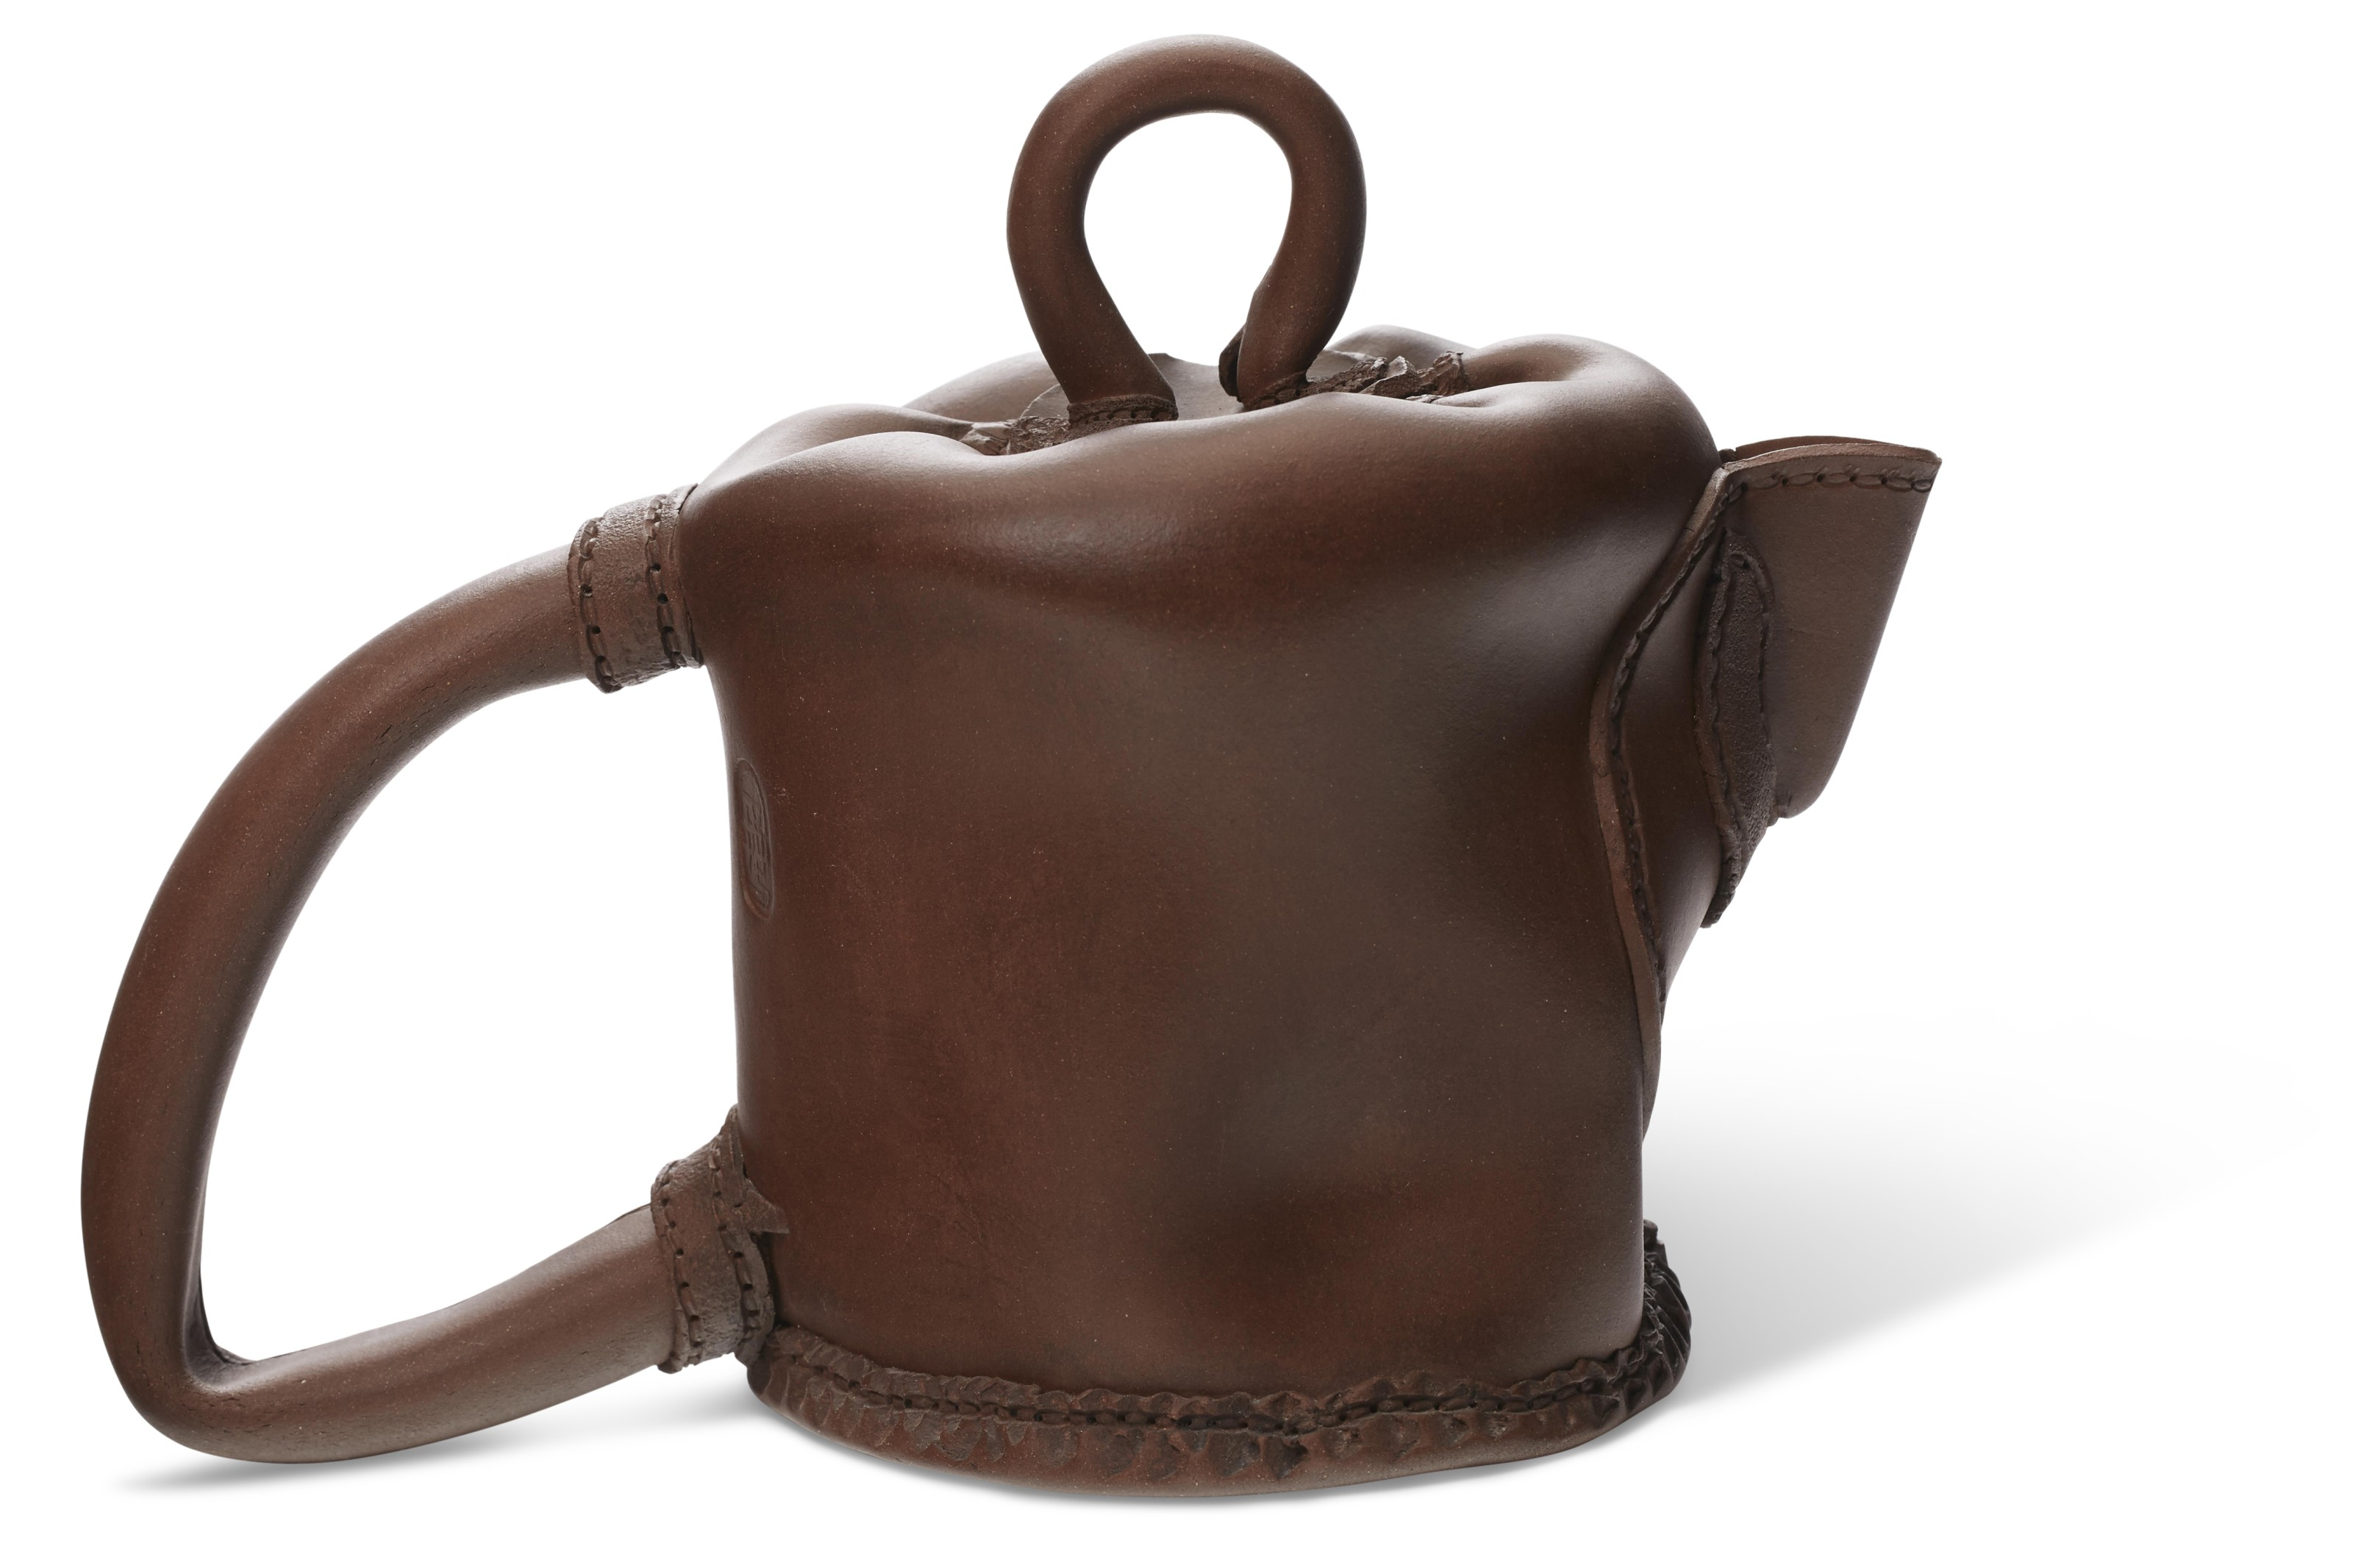 A LARGE YIXING TEAPOT AND COVER IMITATING A SEWN LEATHER POUCH, 'LOOP BAG'